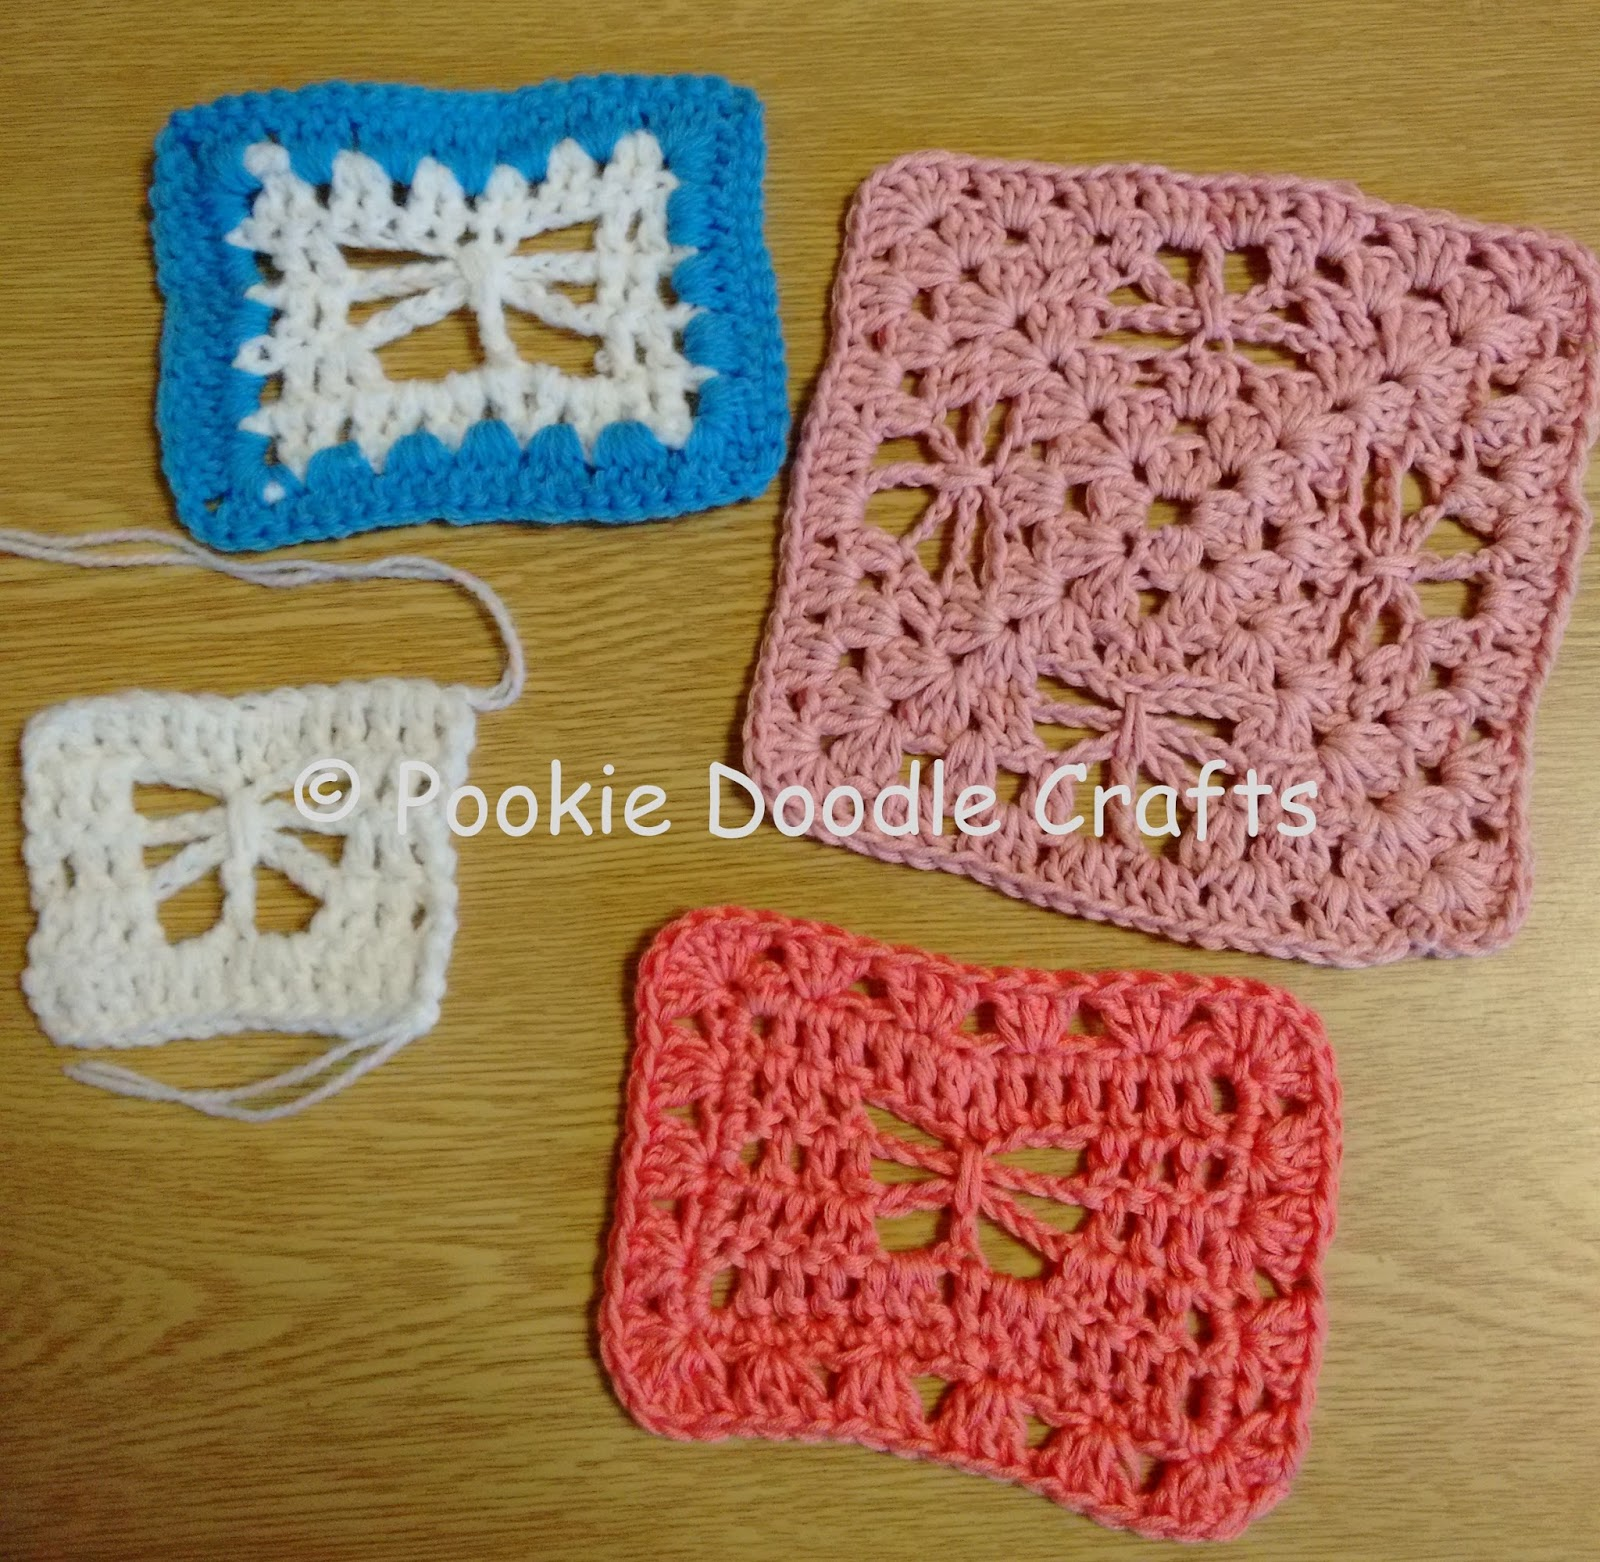 Pookie doodle crafts butterfly stitch crochet tutorial you can also see my video here if you find watching a tutorial easier bankloansurffo Gallery